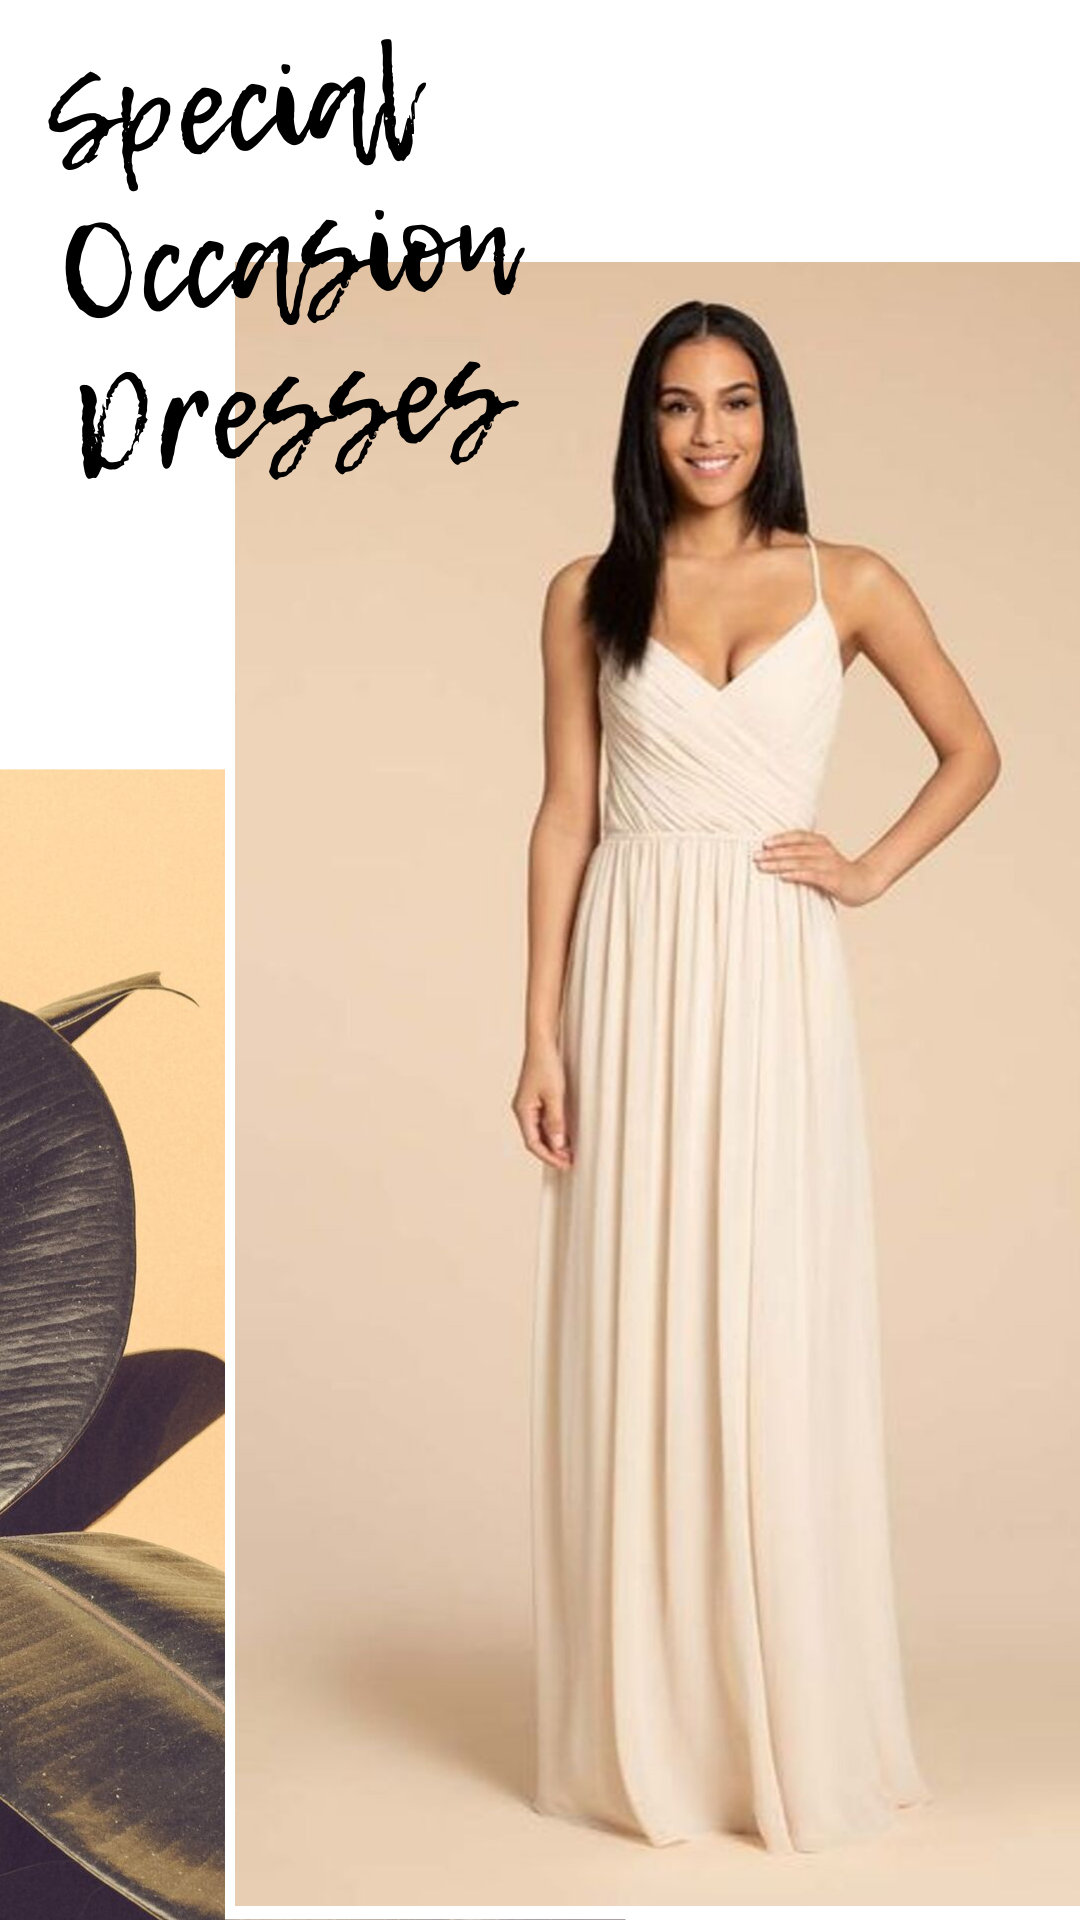 ivory-and-beau-blog-special-occasion-dresses-sale-bridal-boutique-savannah-wedding-planners.png